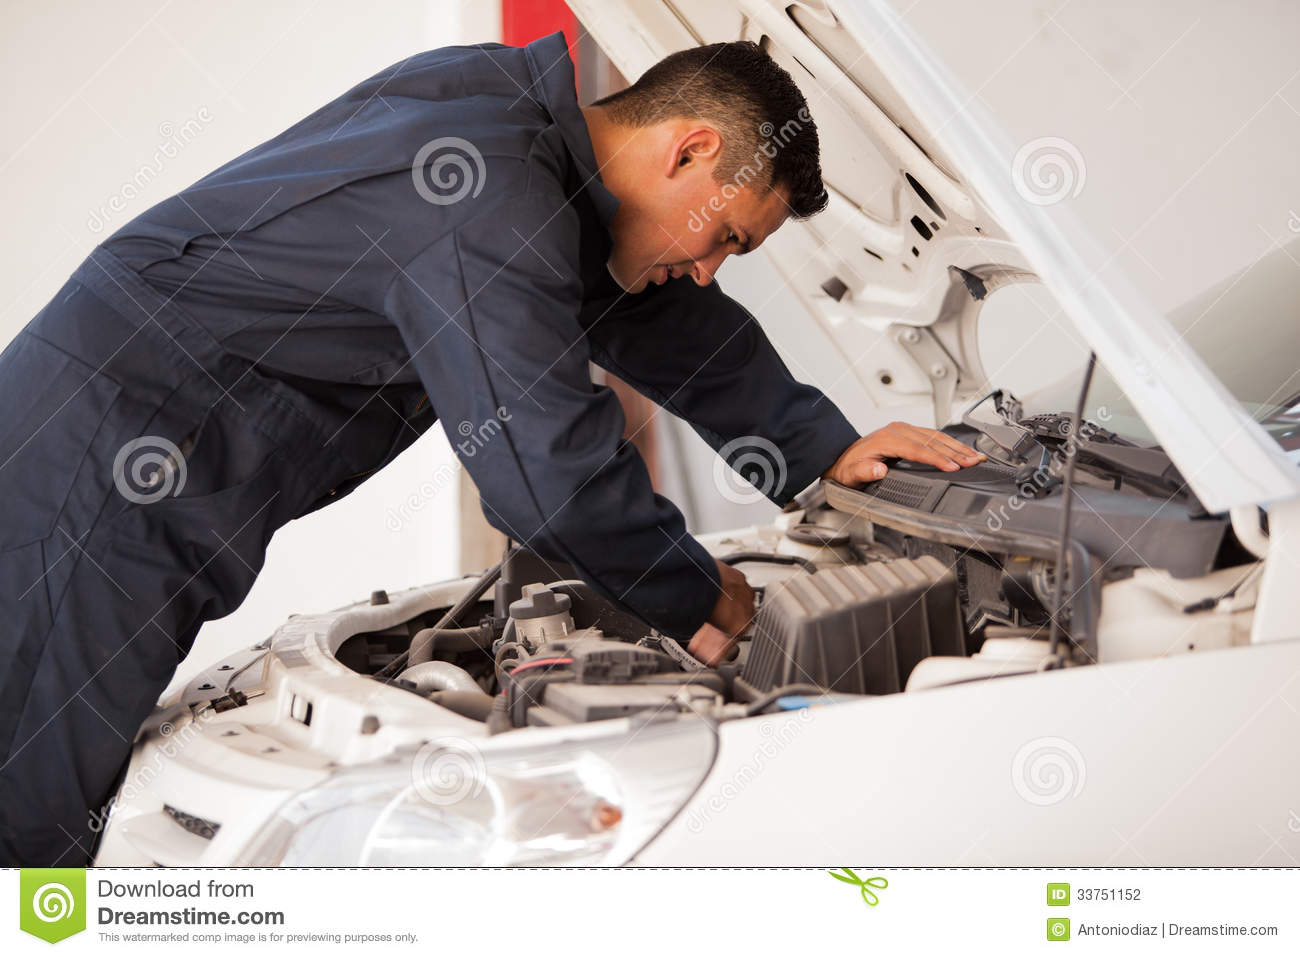 Working on a car engine